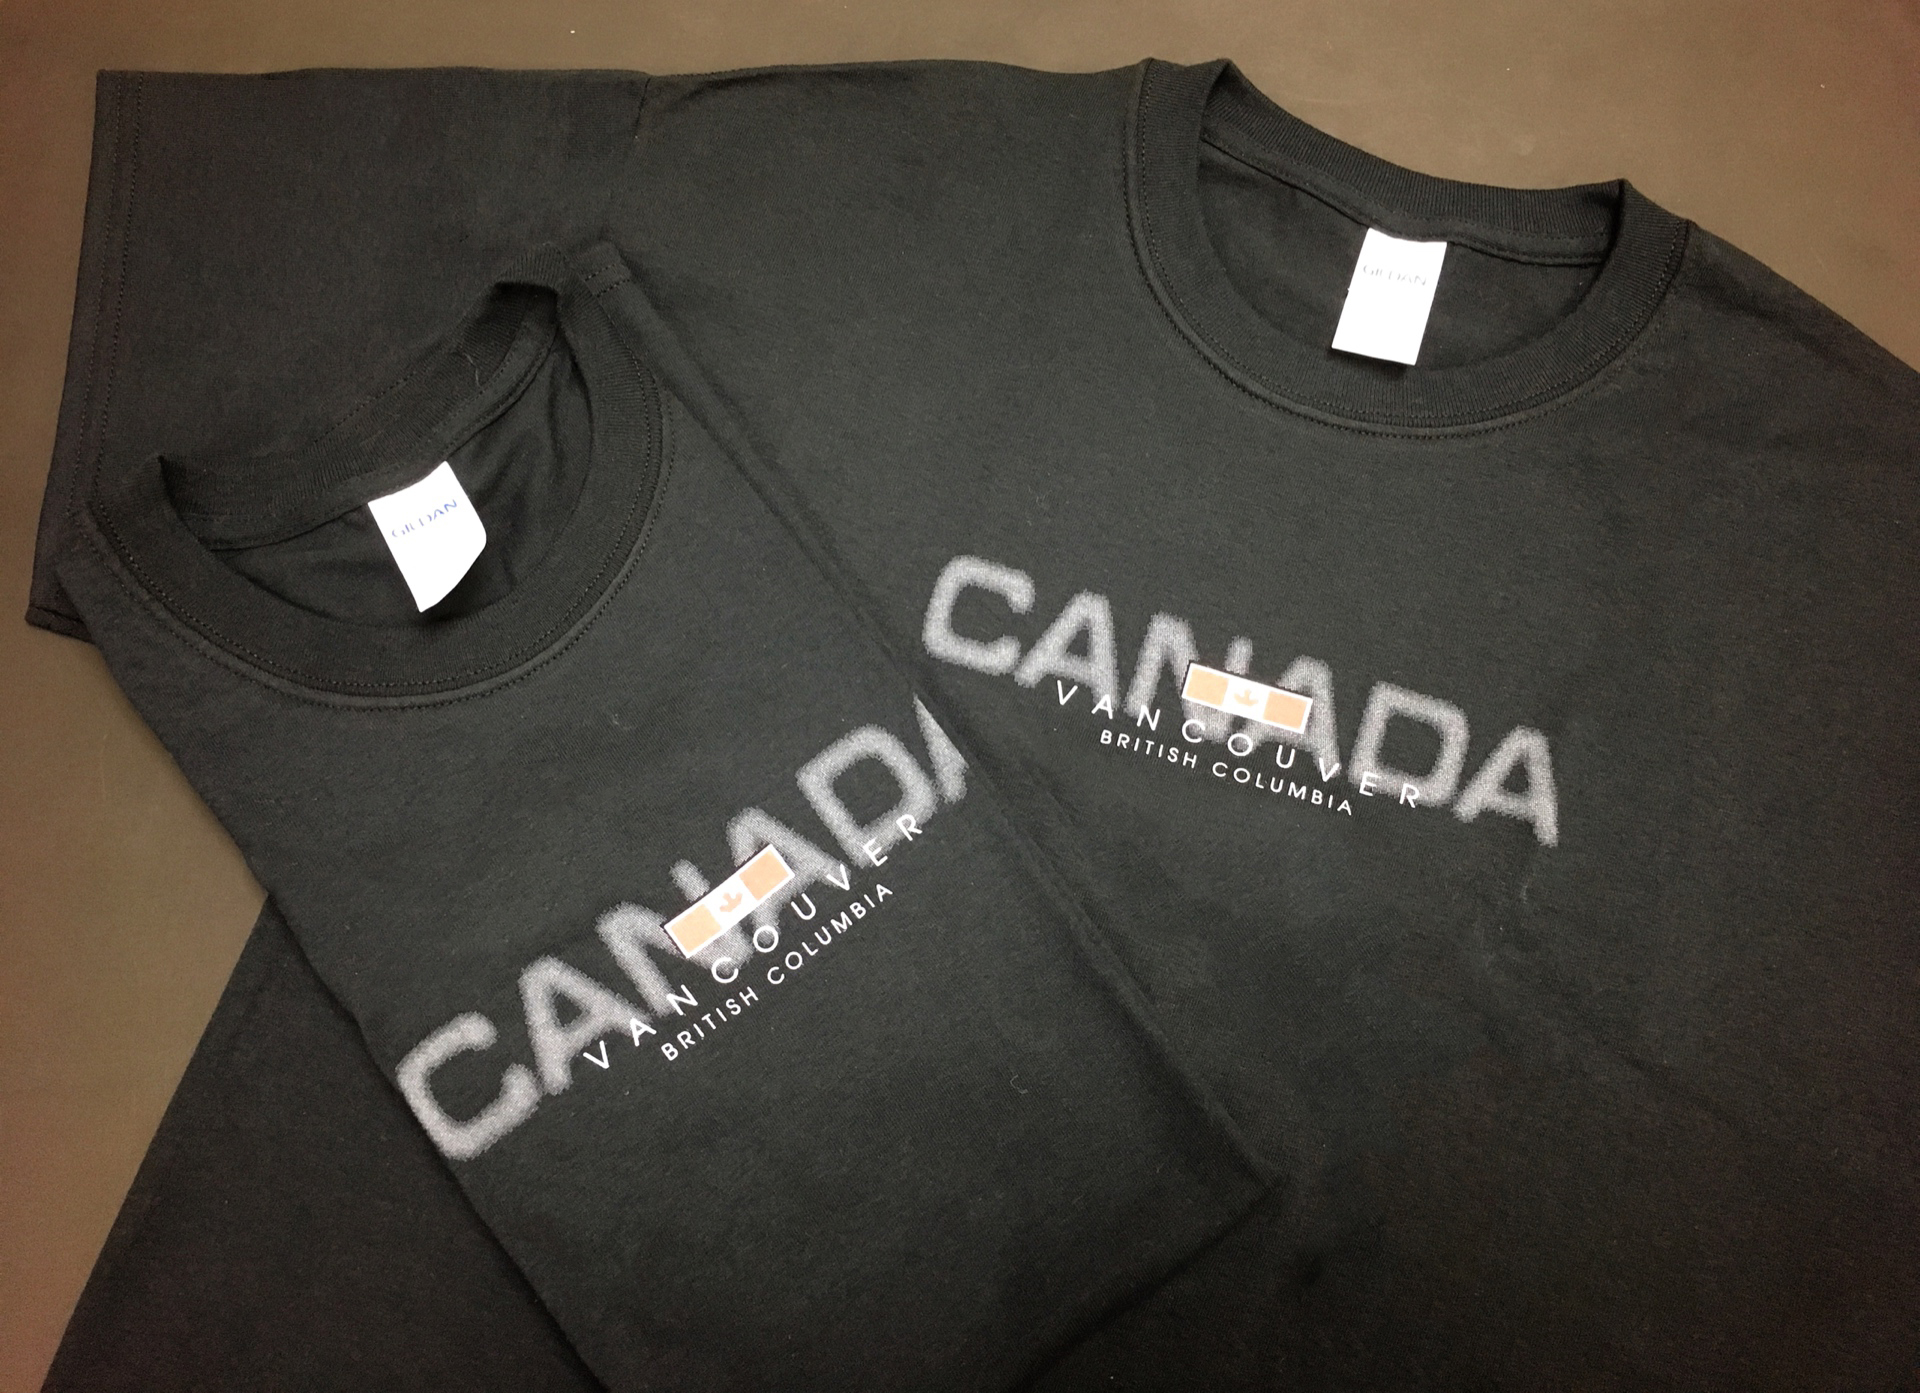 CANADA Tシャツの写真